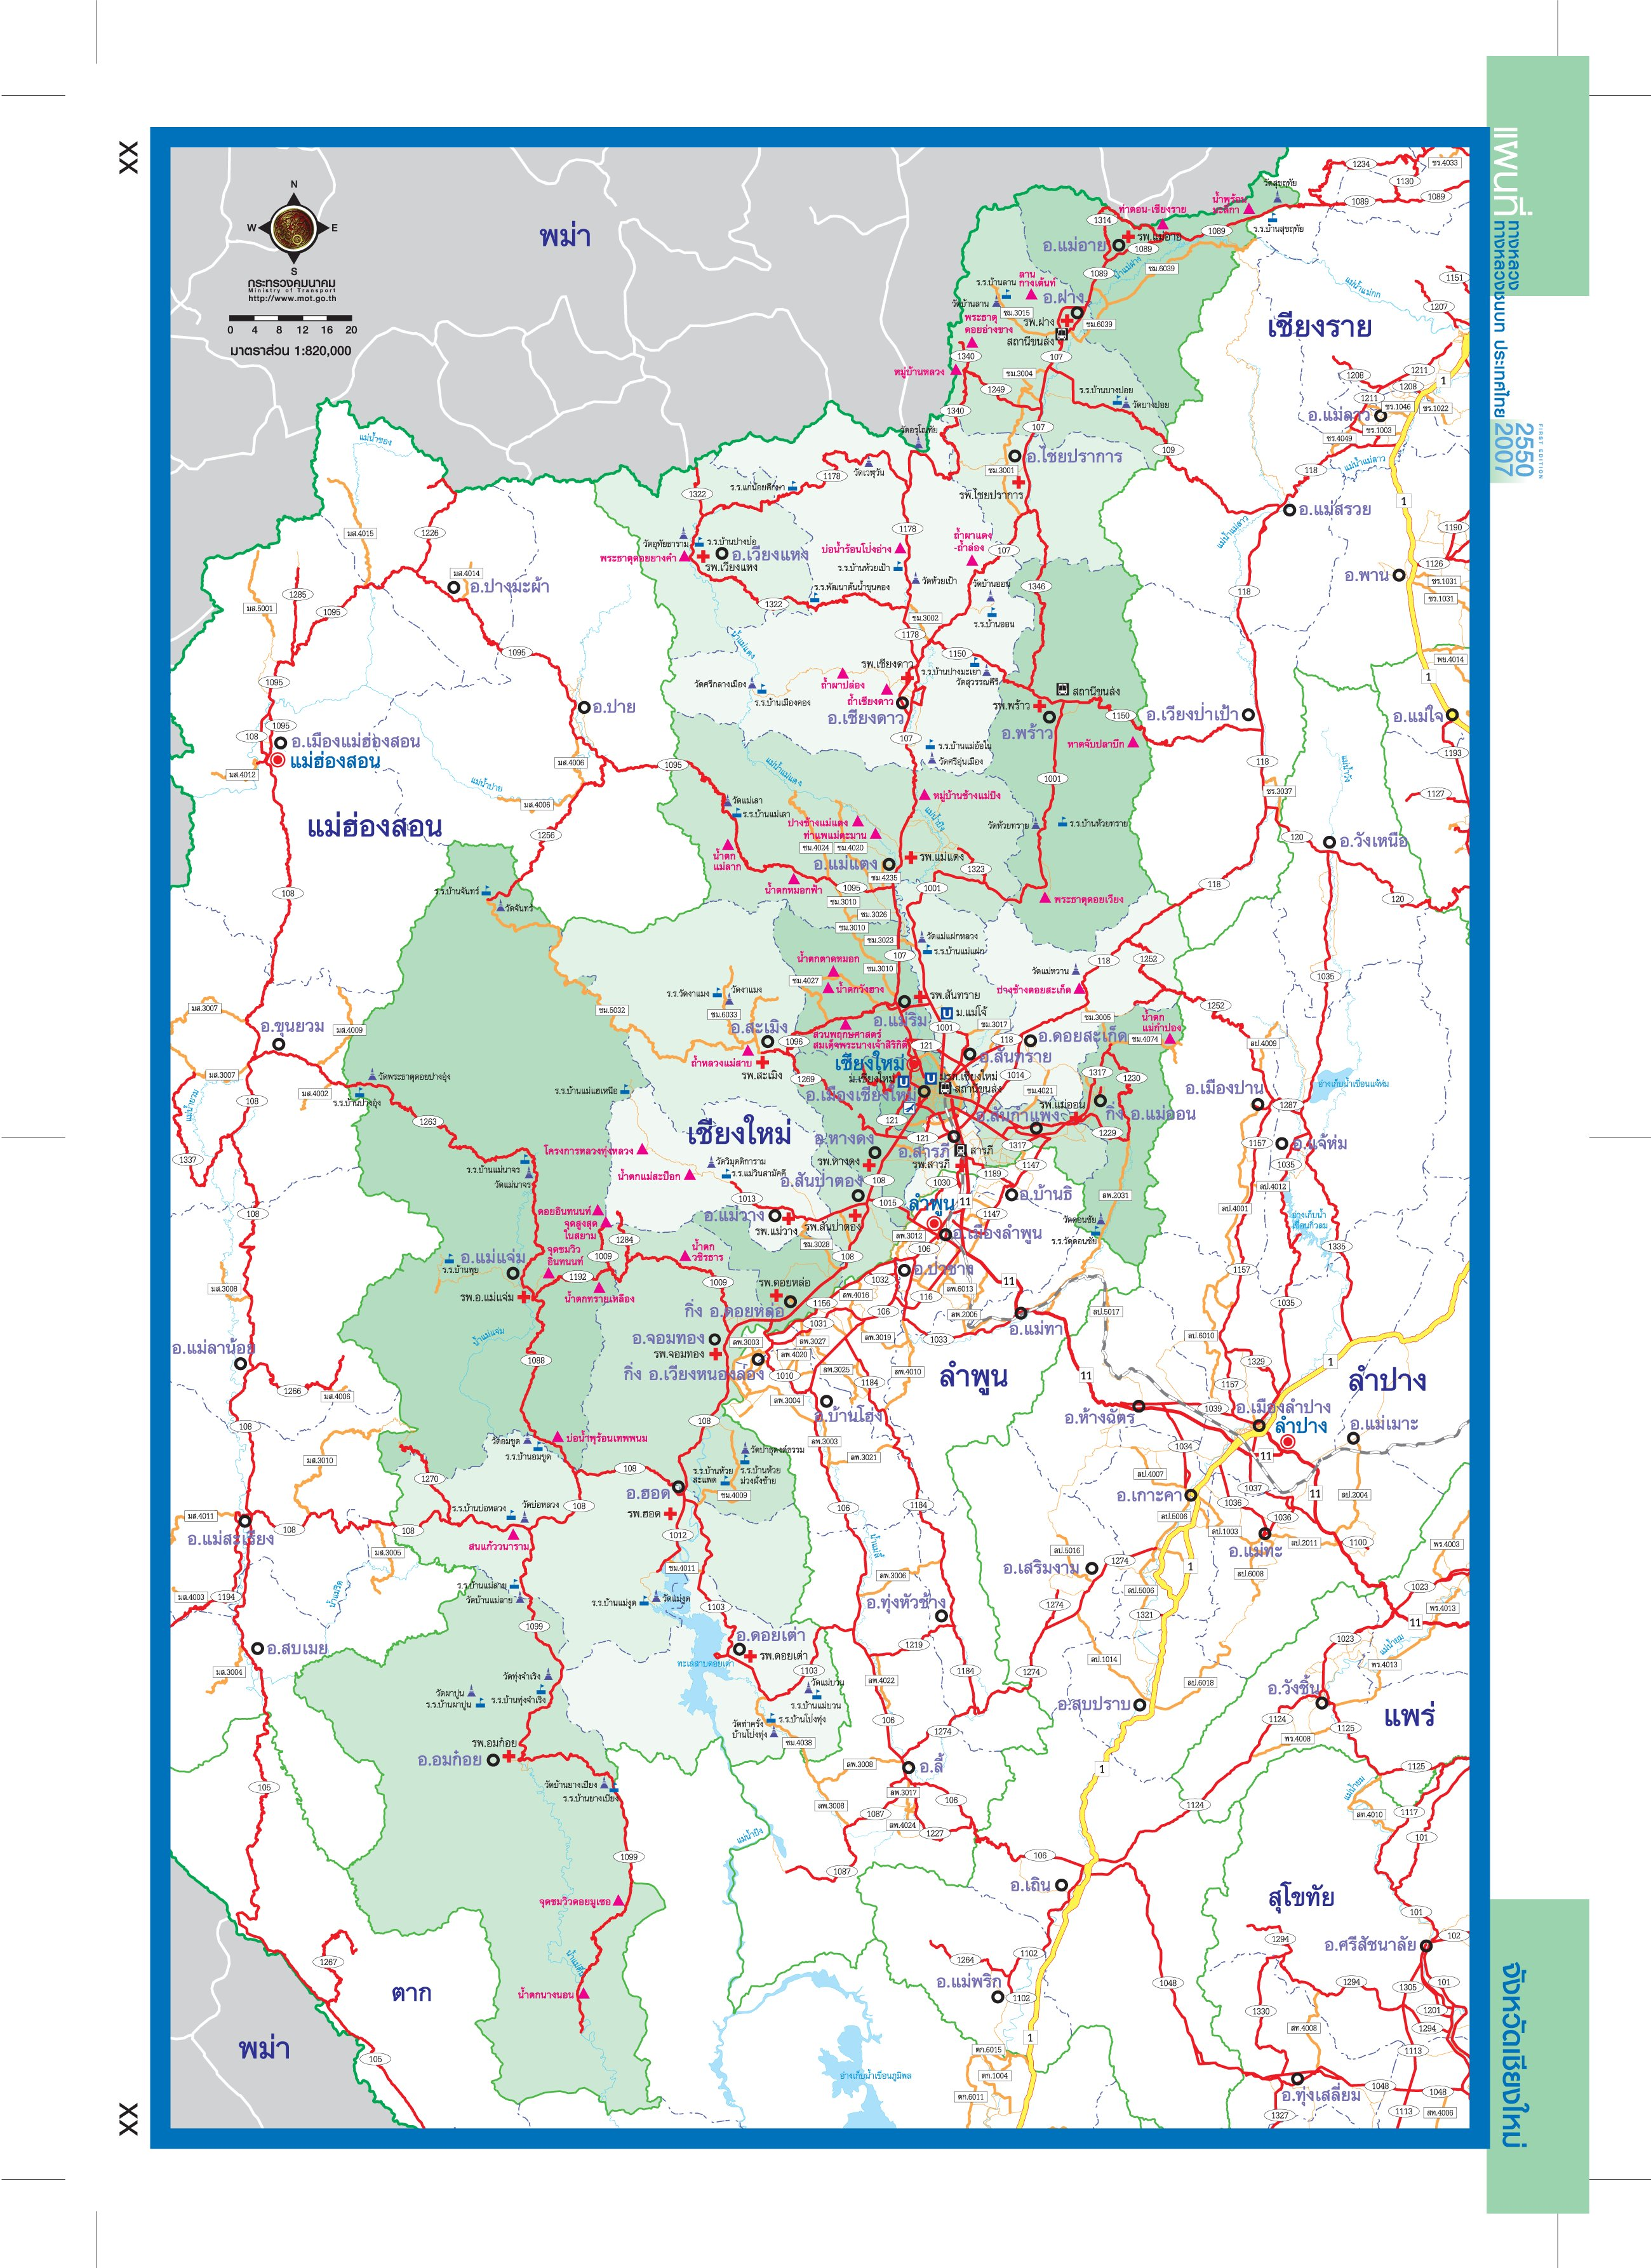 Chiang Mai Thailand Map - ChiangMai Thailand • mappery on provinces of thailand, phuket province, mae taeng thailand map, koh yao noi thailand map, surat thani province, thanyaburi thailand map, nakhon phanom thailand map, koh samui thailand map, koh tao island thailand map, suratthani thailand map, nang rong thailand map, bophut thailand map, chiang rai, krabi province, phuket thailand map, wat phrathat doi suthep, wat pho thailand map, chiang mai zoo, doi inthanon thailand map, wat phra kaew thailand map, doi inthanon, kanchanaburi province thailand map, aranyaprathet thailand map, kanchanaburi province, uthai thani thailand map, northern thailand, doi suthep, thailand train service map, chiang rai province, phang nga province, chennai thailand map, khon kaen province, southern thailand, nan province, mae sai thailand map, grand palace thailand map,